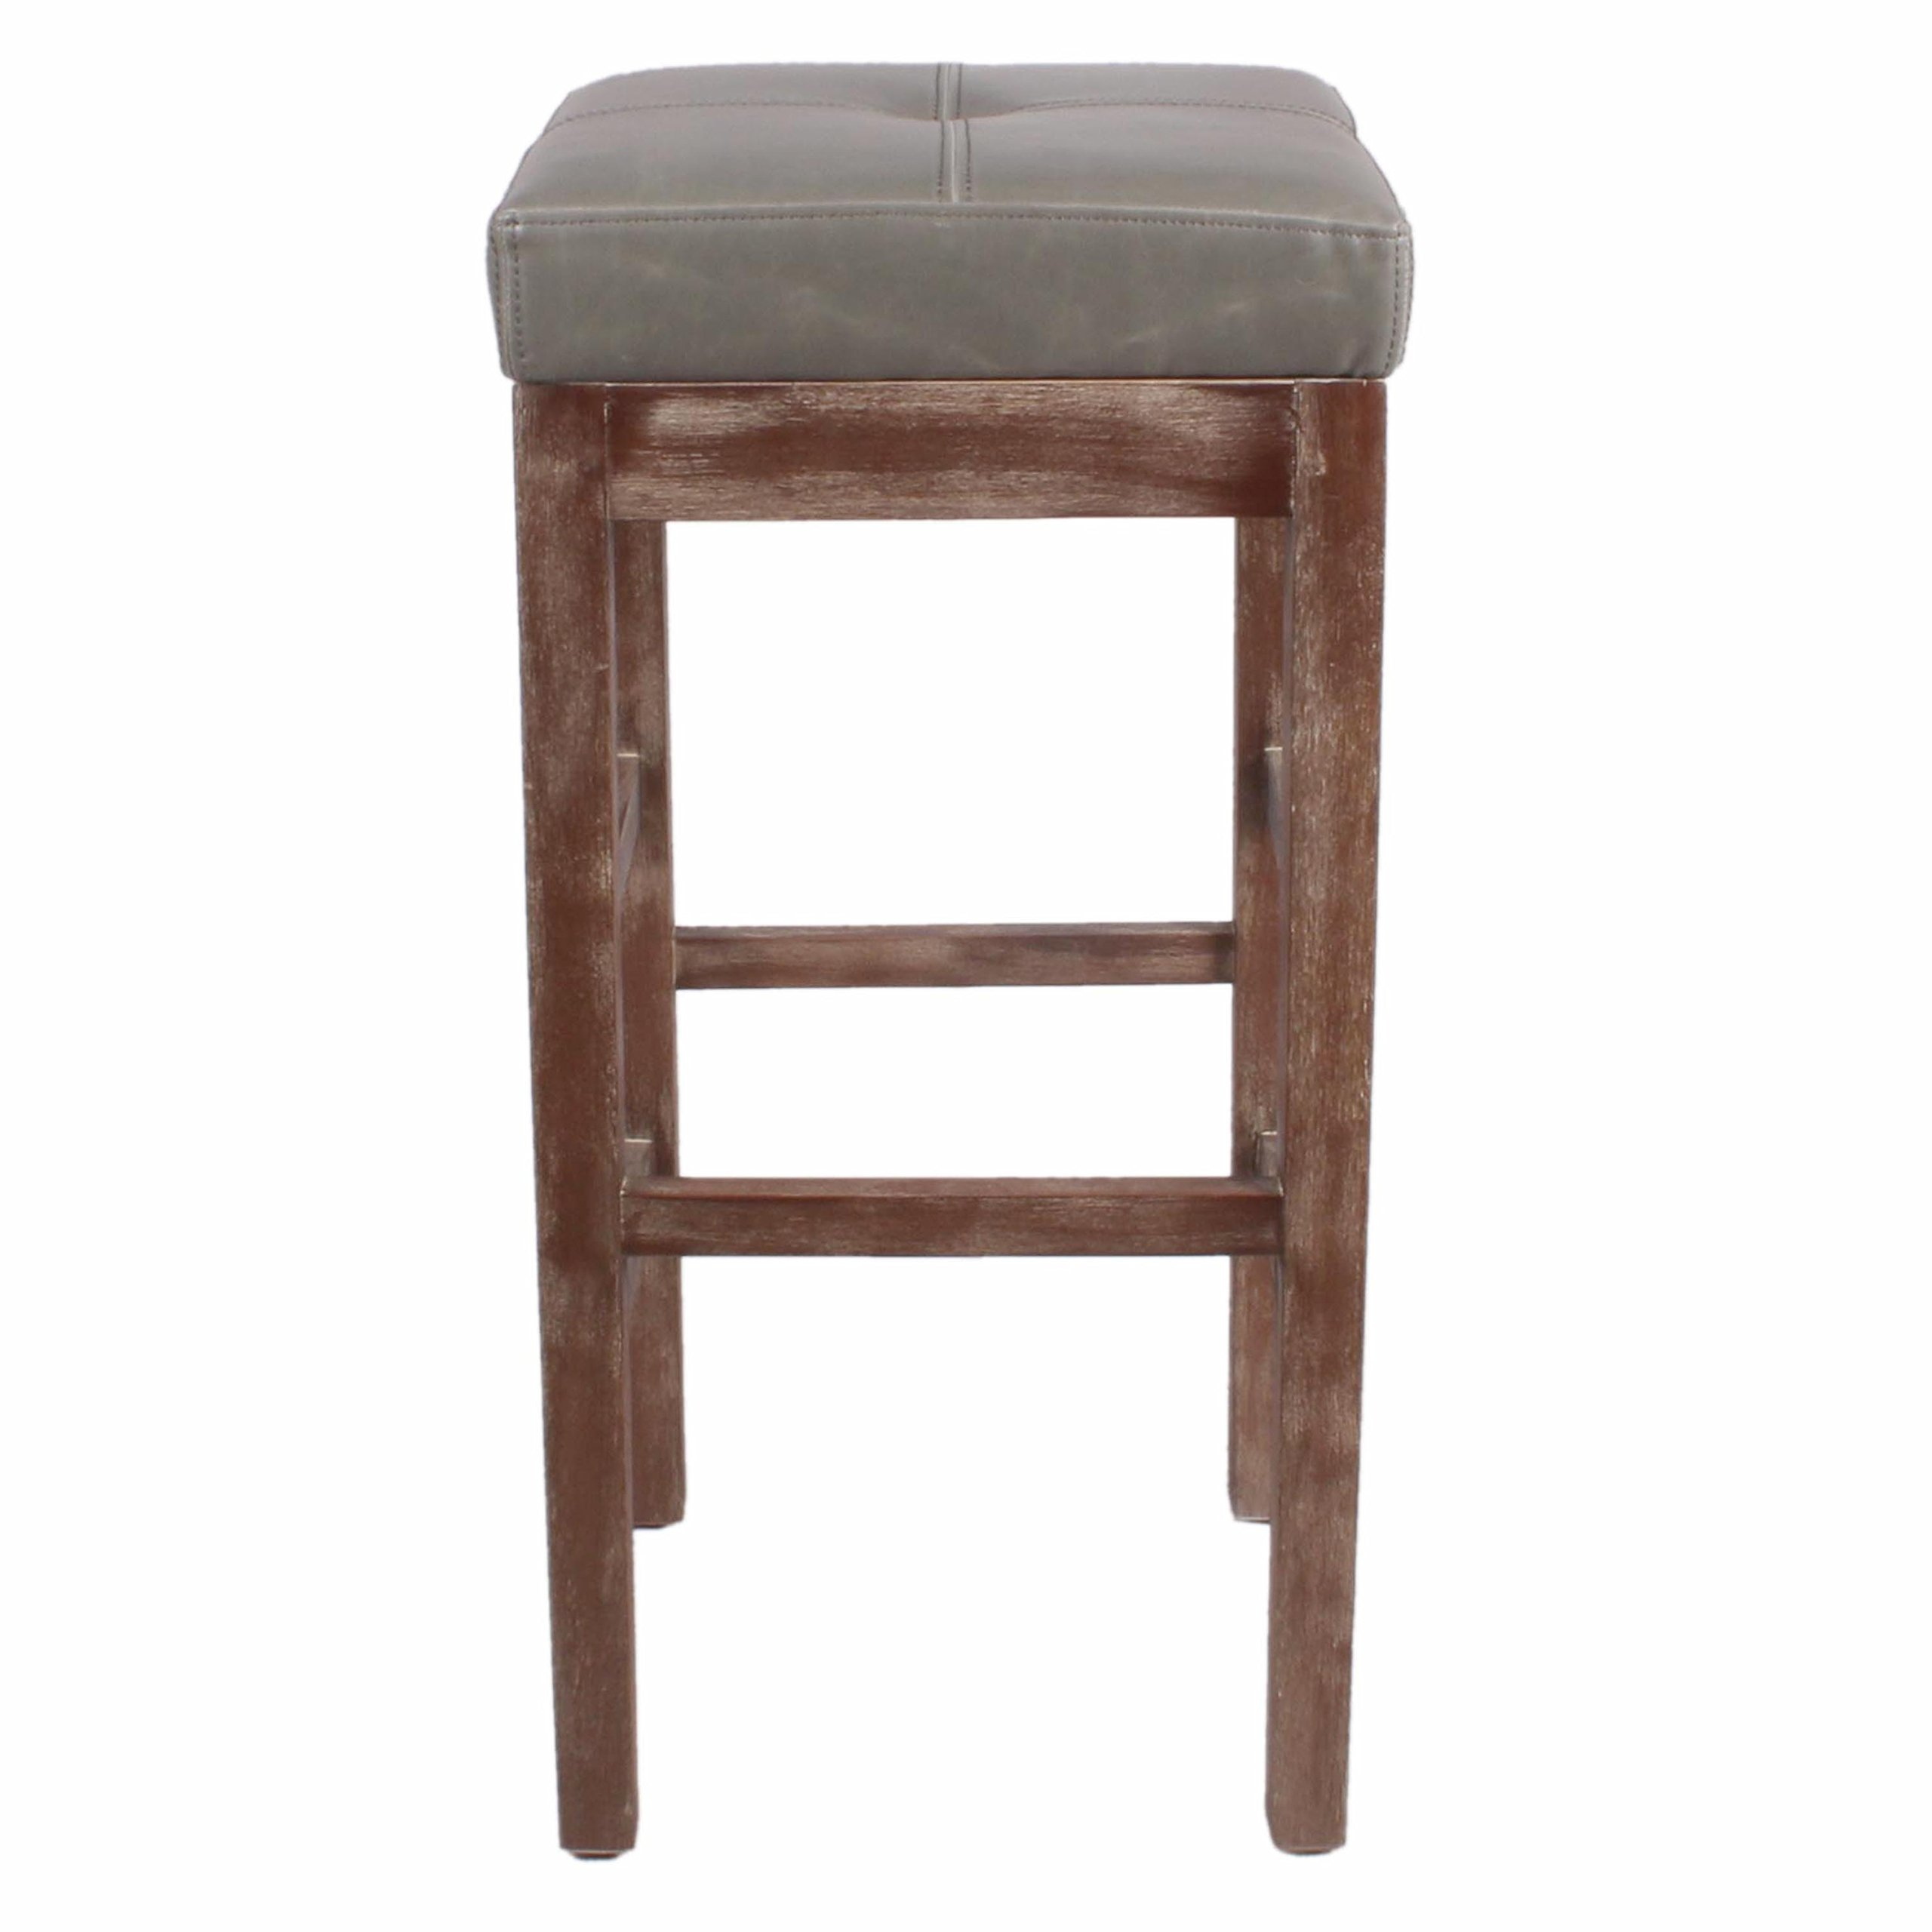 New Pacific Direct Valencia 27'' Bonded Leather Counter Stool, Drift Wood Legs, Vintage Gray by New Pacific Direct (Image #3)